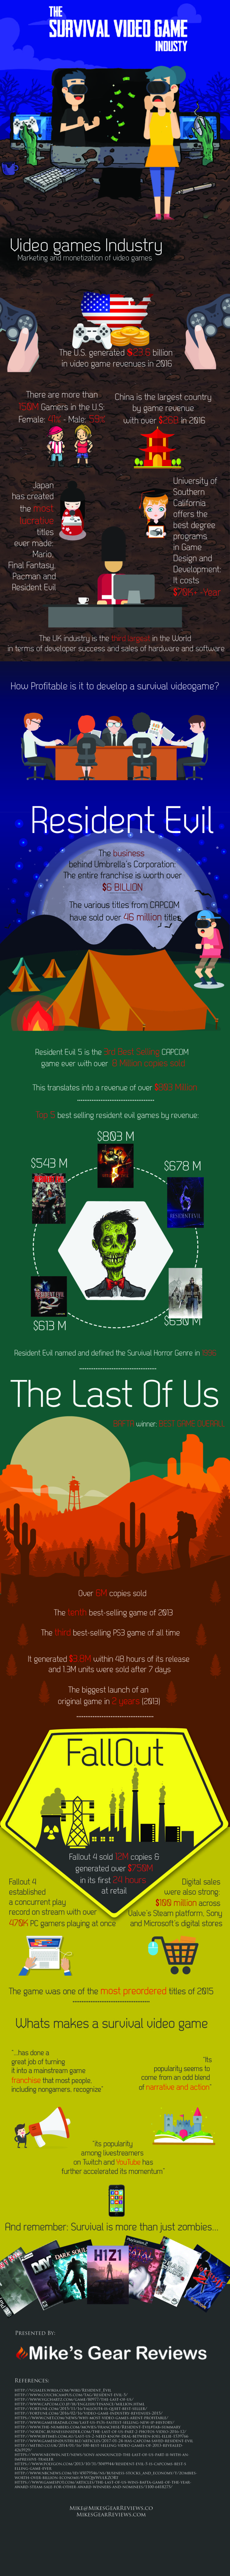 A Look At The Survival Video Games Industry (Infographic)